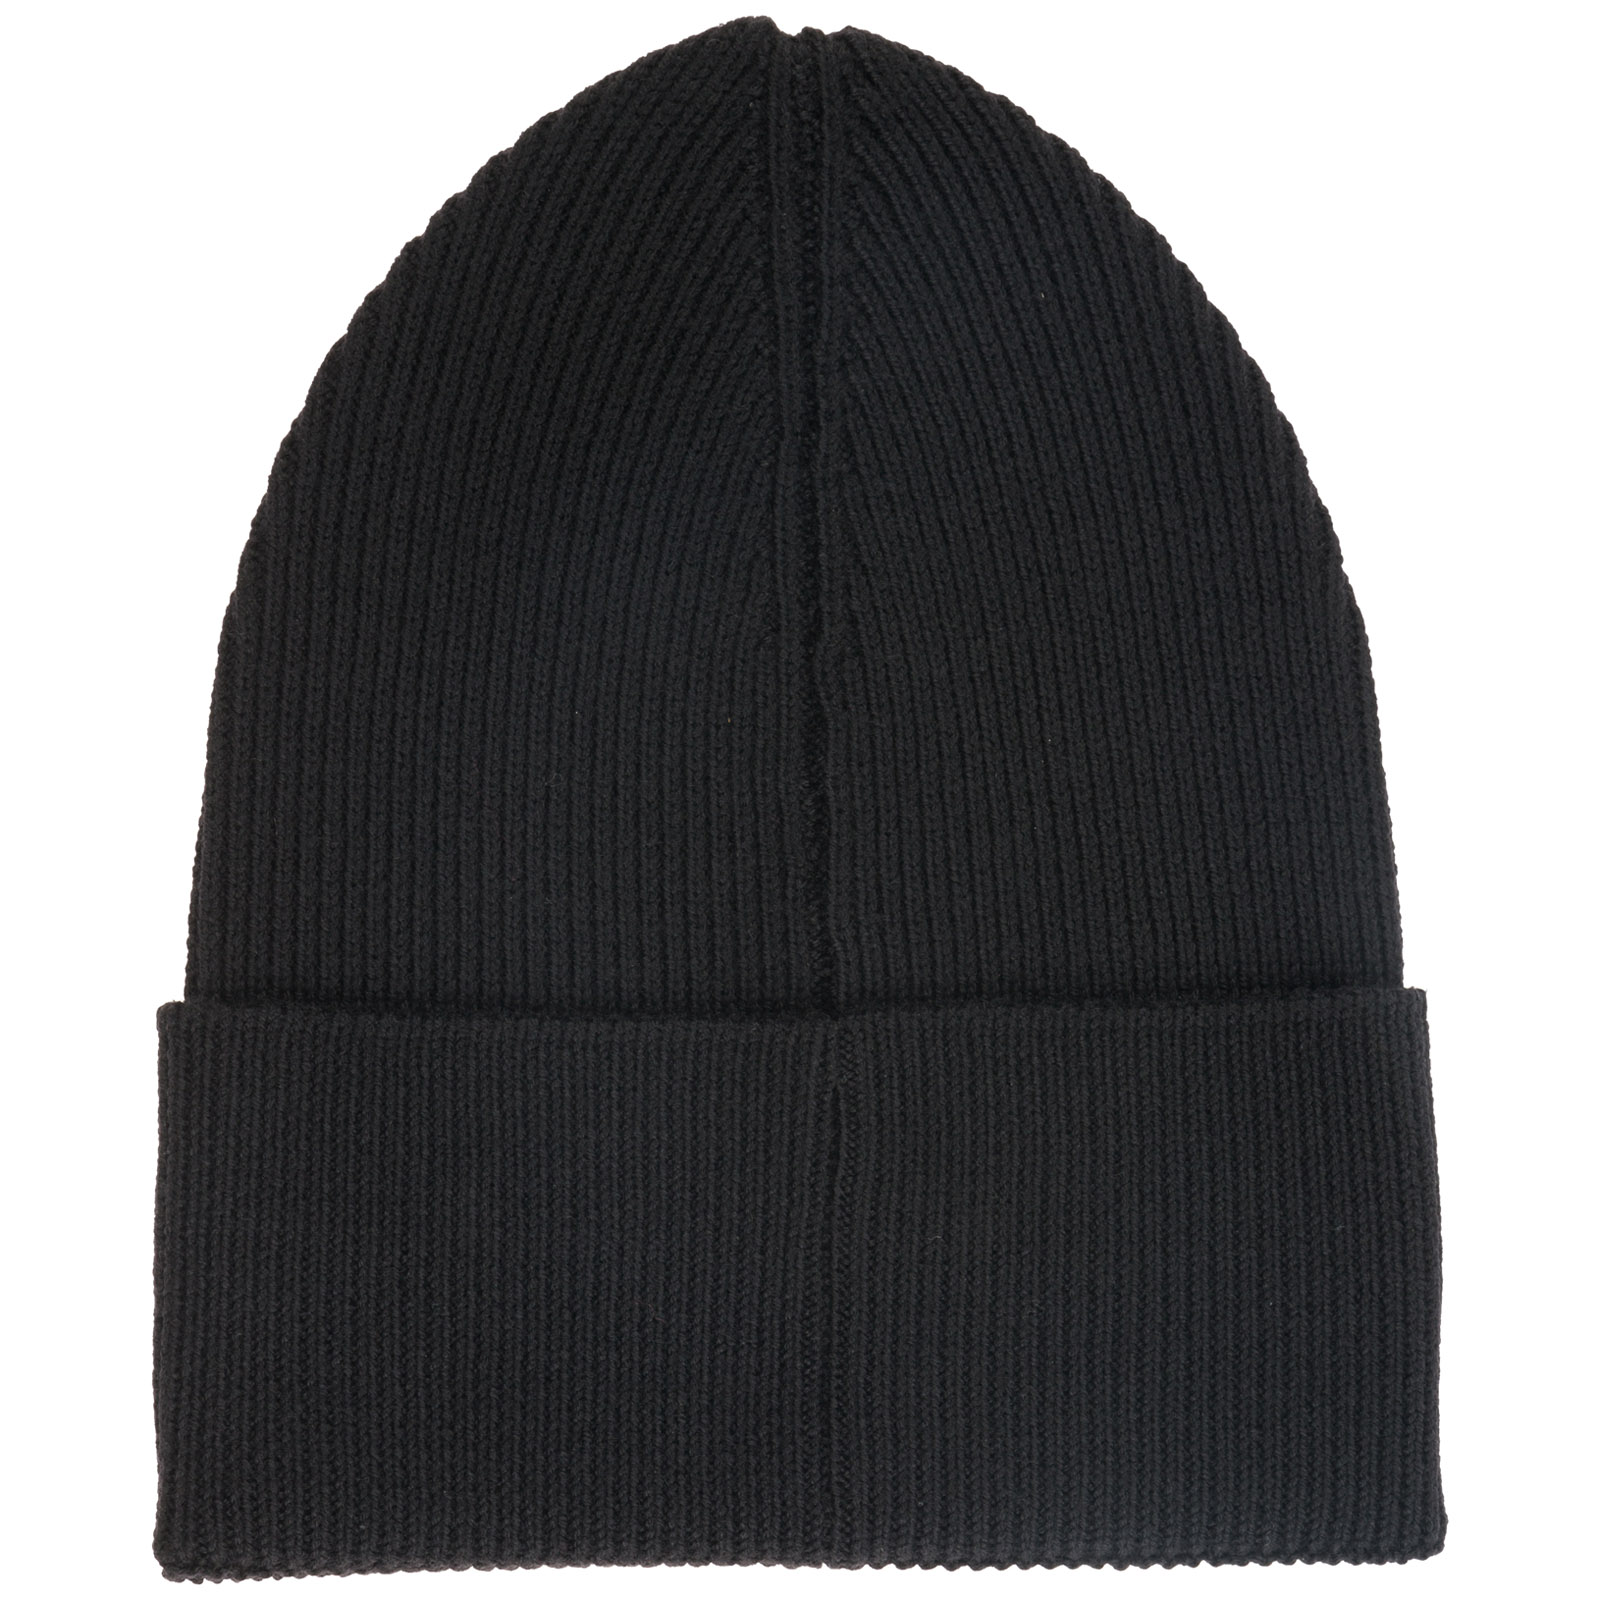 Men's wool beanie hat